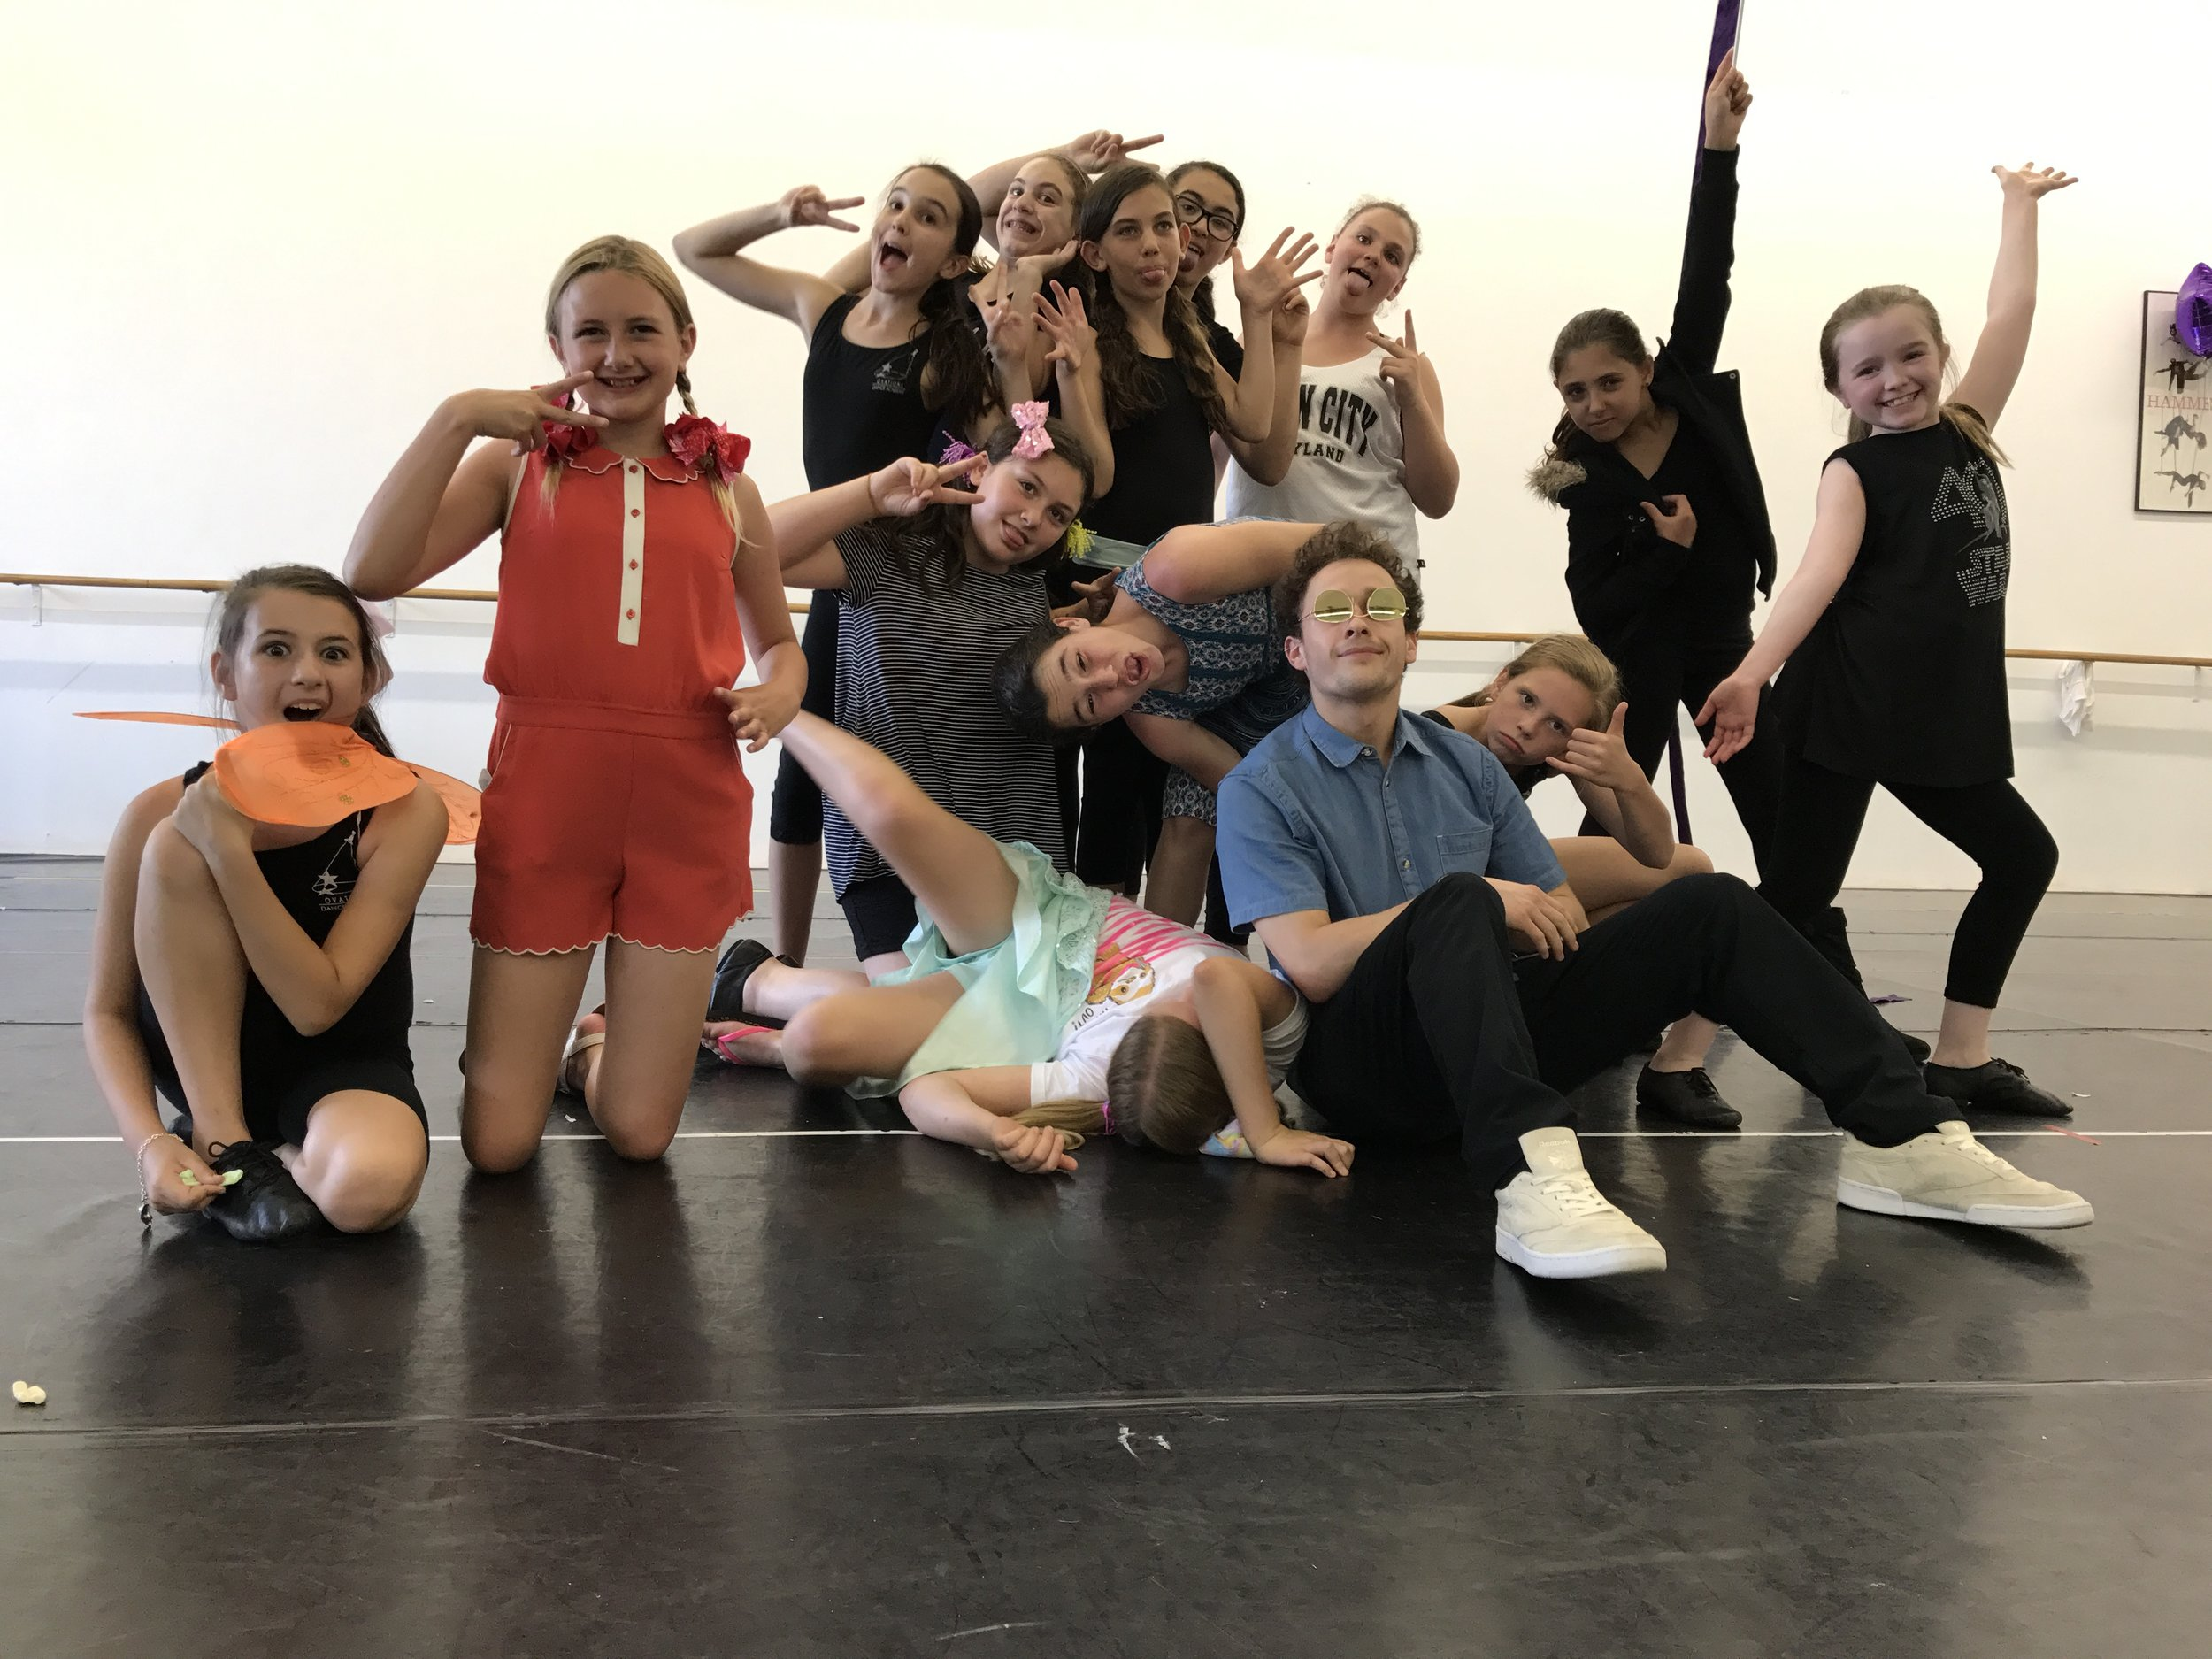 Ovations Dance  - At Ovations Dance Academy in Long Island, Tovi teaches 4 acting classes and 2 dance classes to students of varying ages and skill sets.